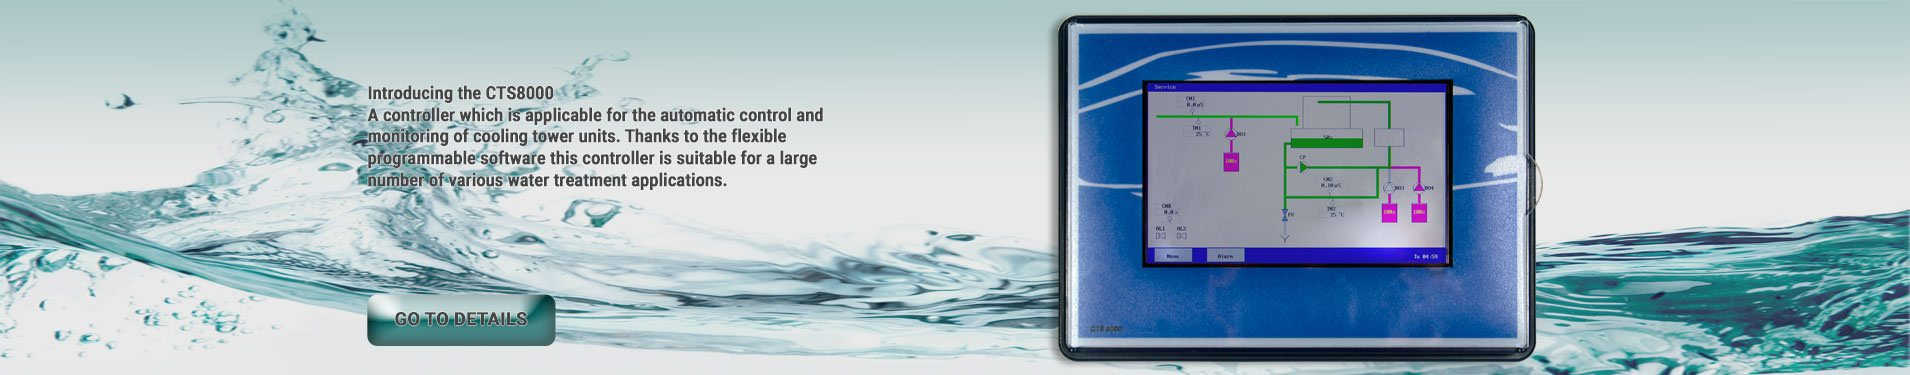 E.W.S. presents a new cooling tower water treatment controller: CTS8000